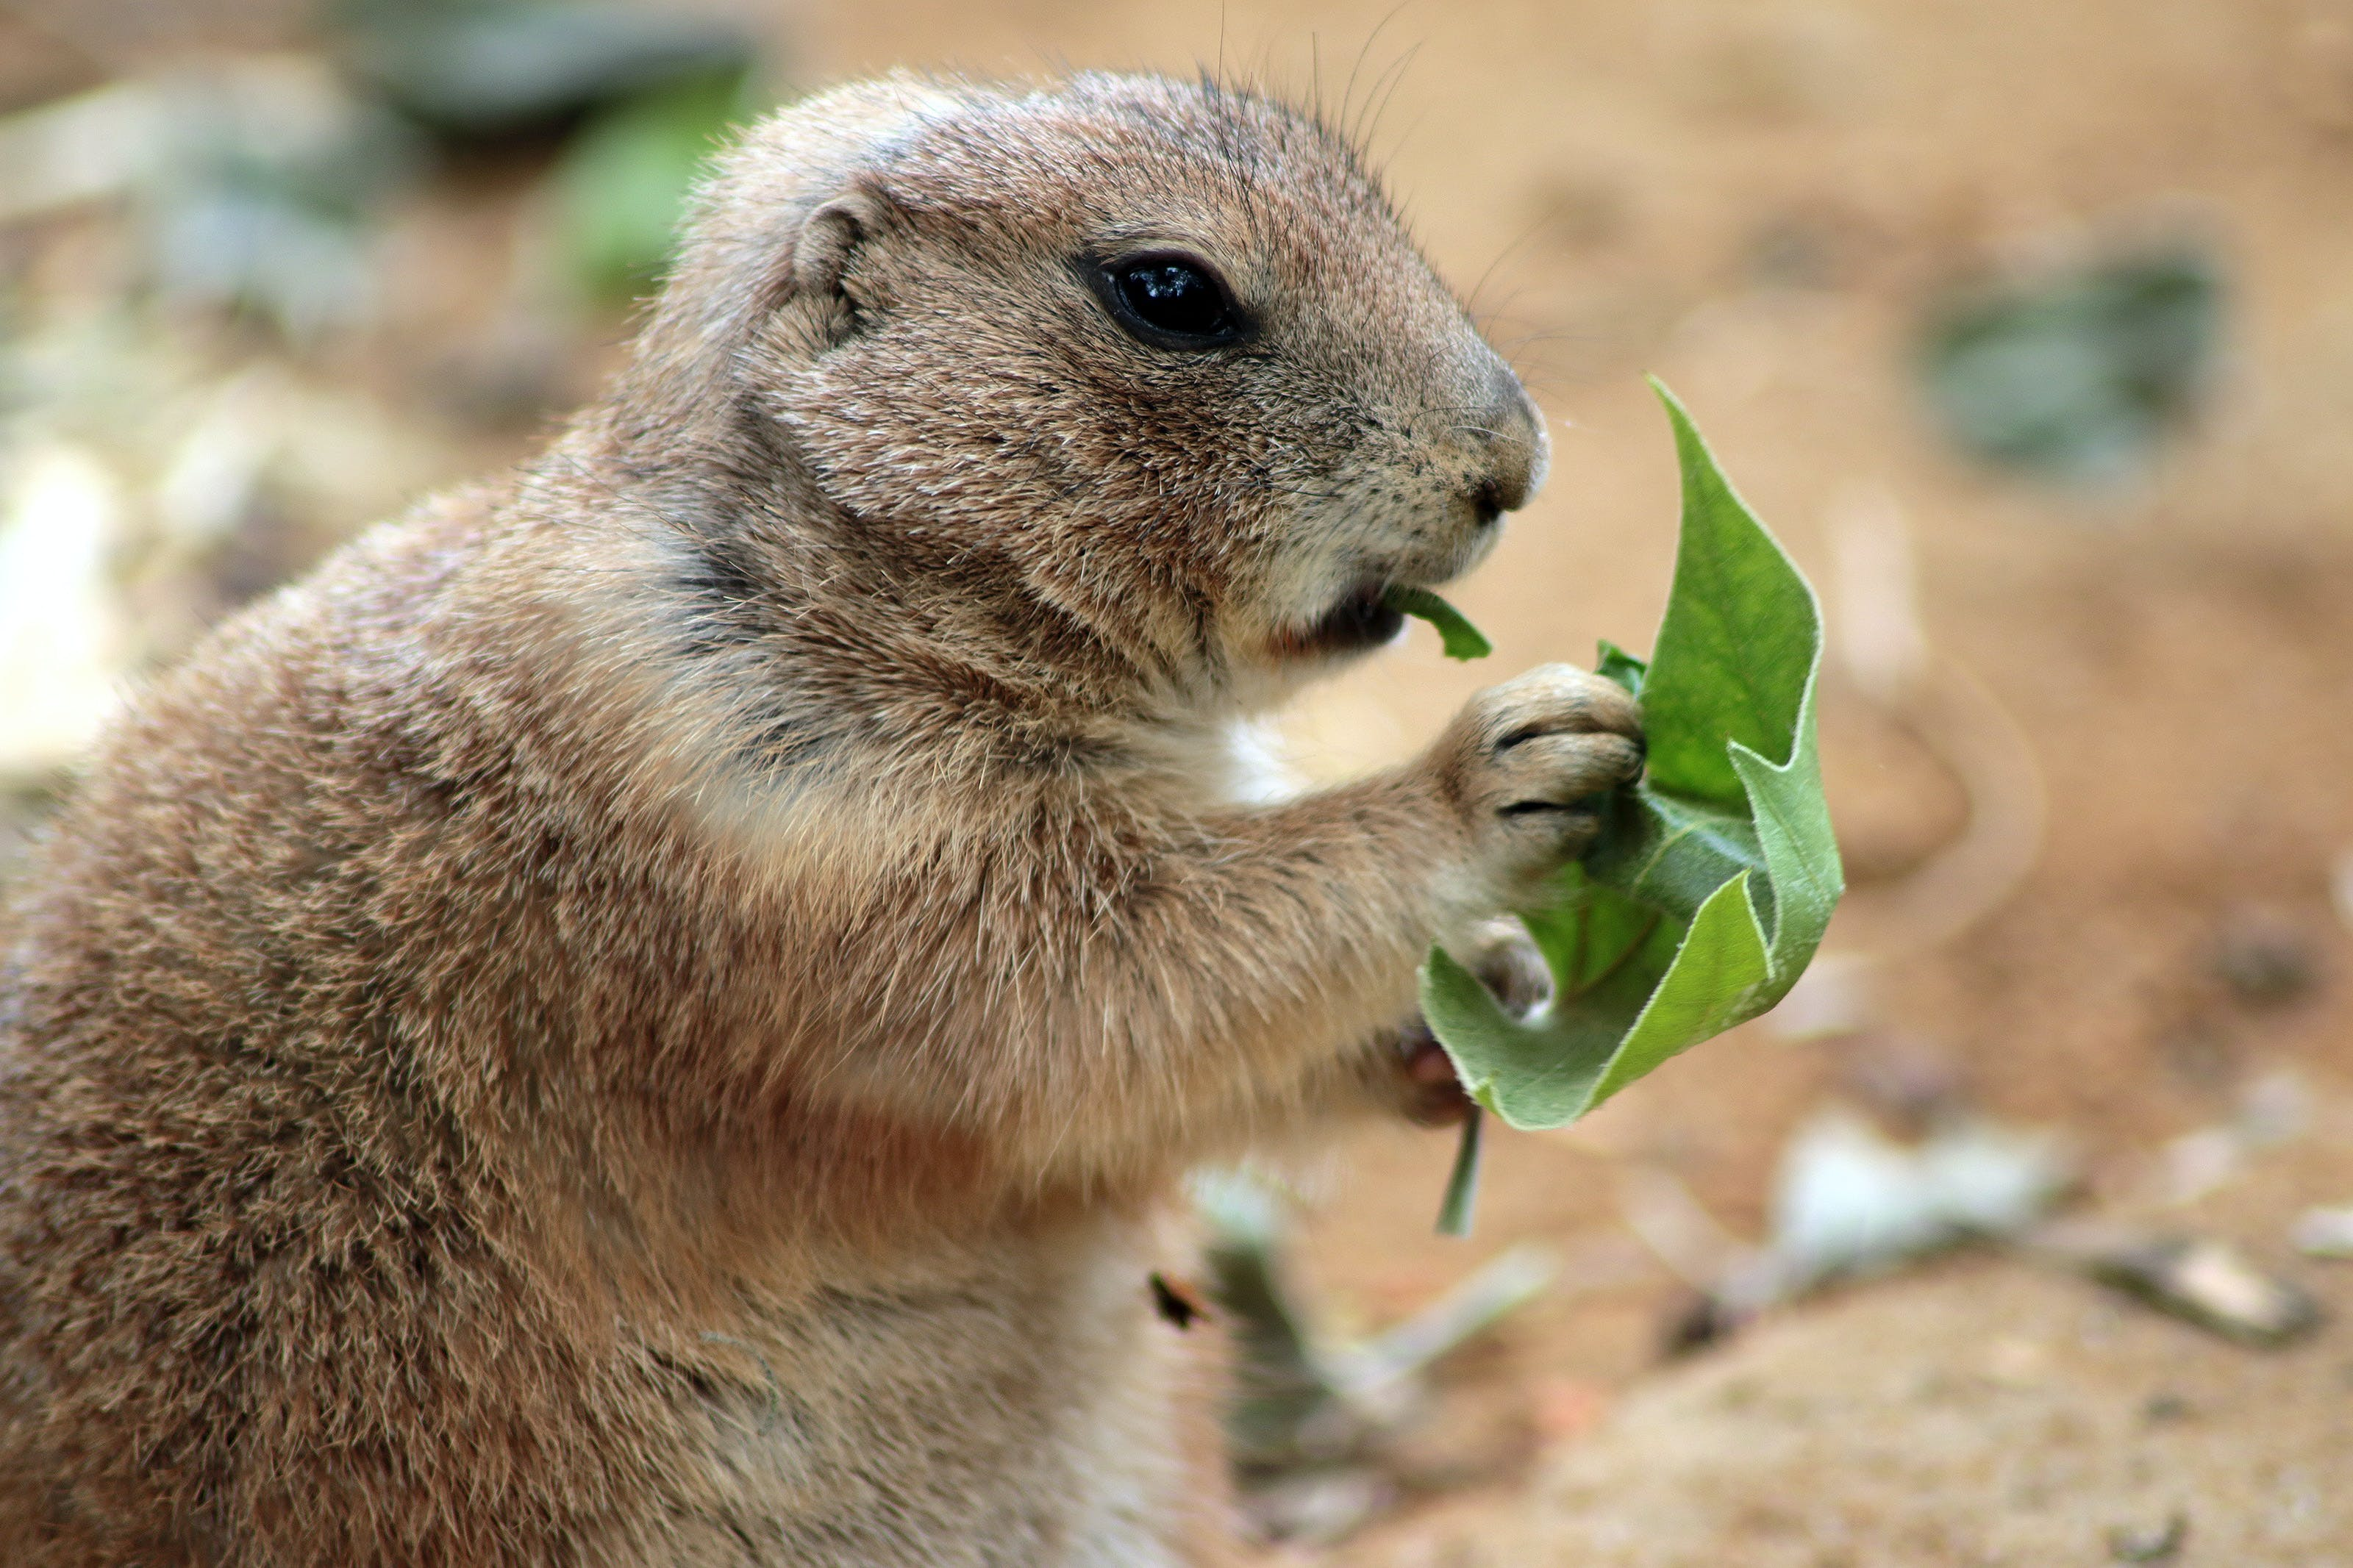 Close Up Photography of Squirrel Holding Green Leaf